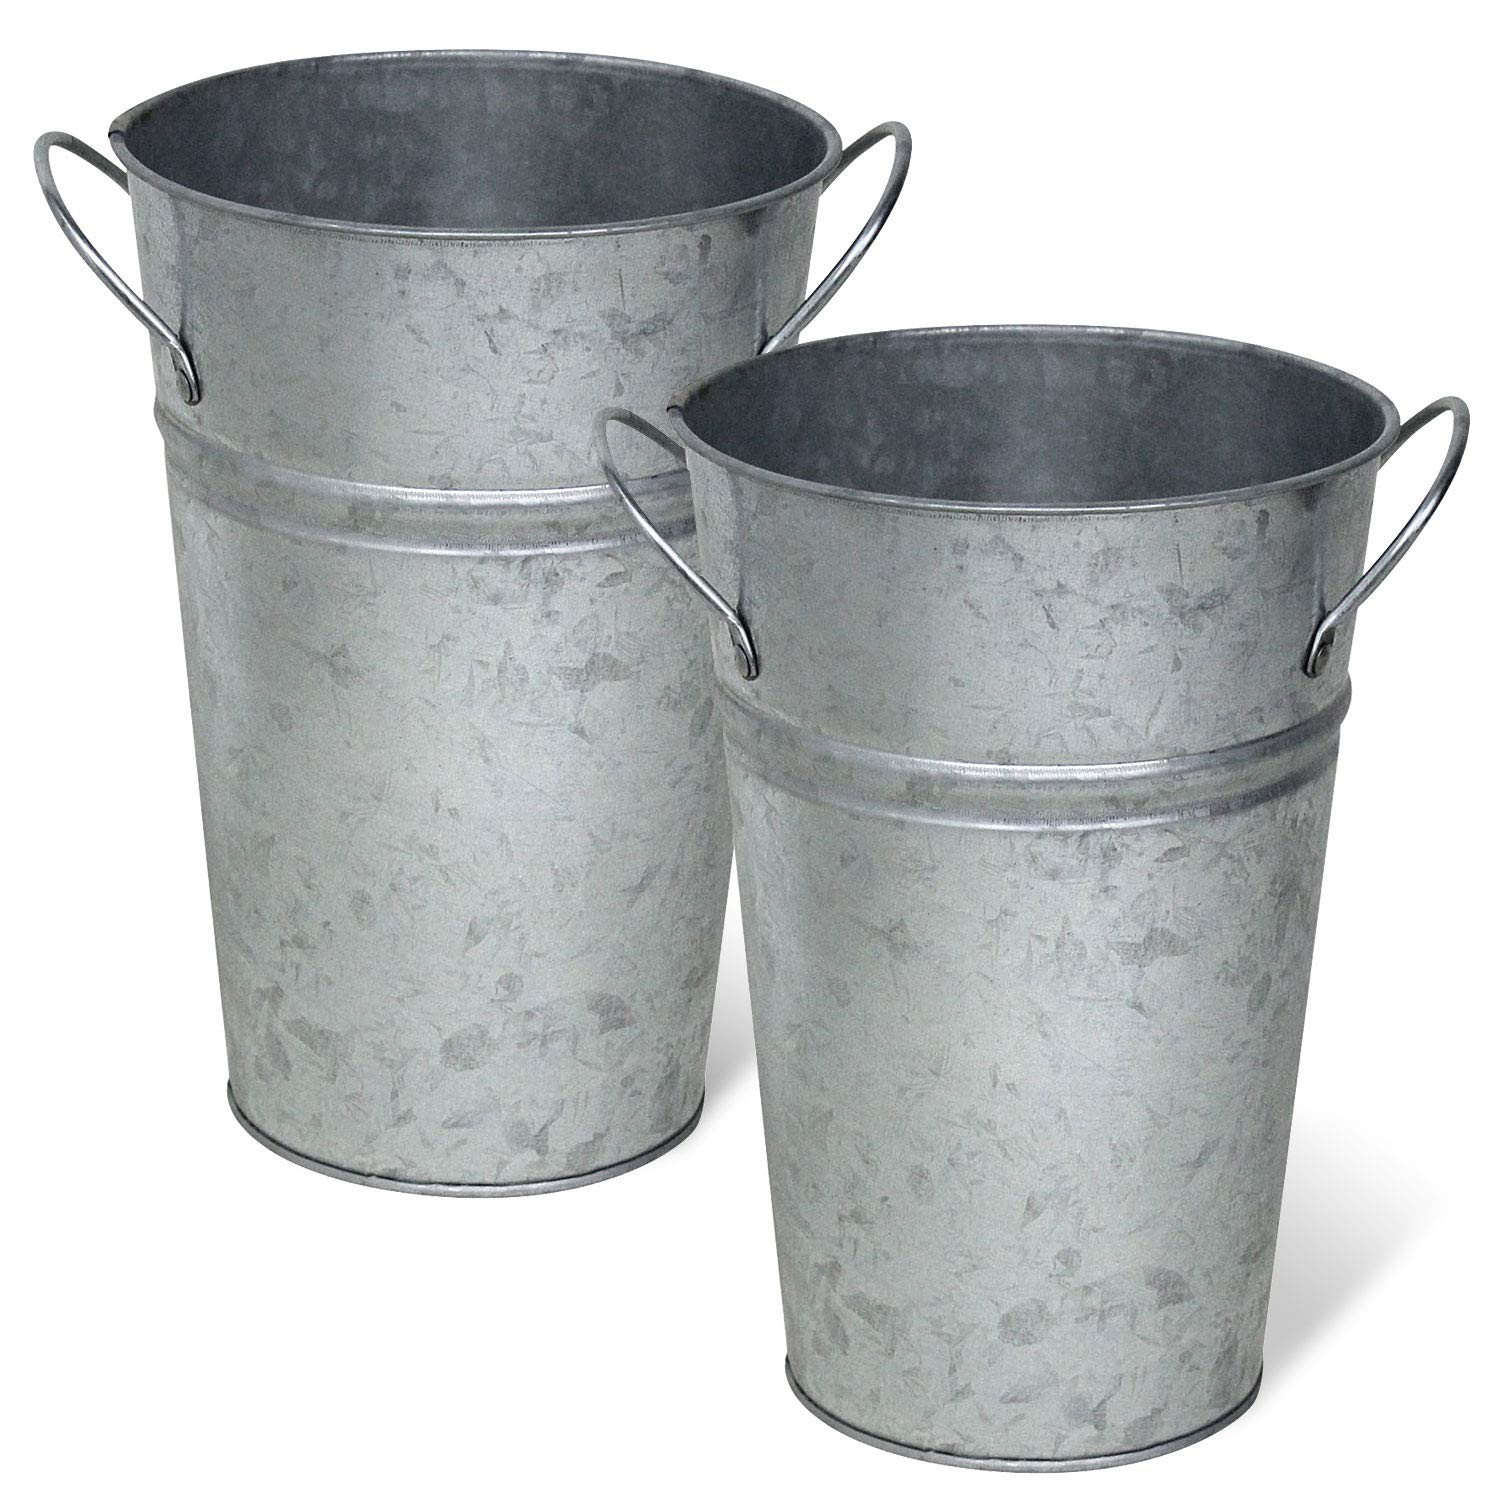 225 & Arbor Lane Rustic Metal Flower Vase - 8 Inches Tall - French Bucket - Farmhouse Style - Set of 2 - (Silver)